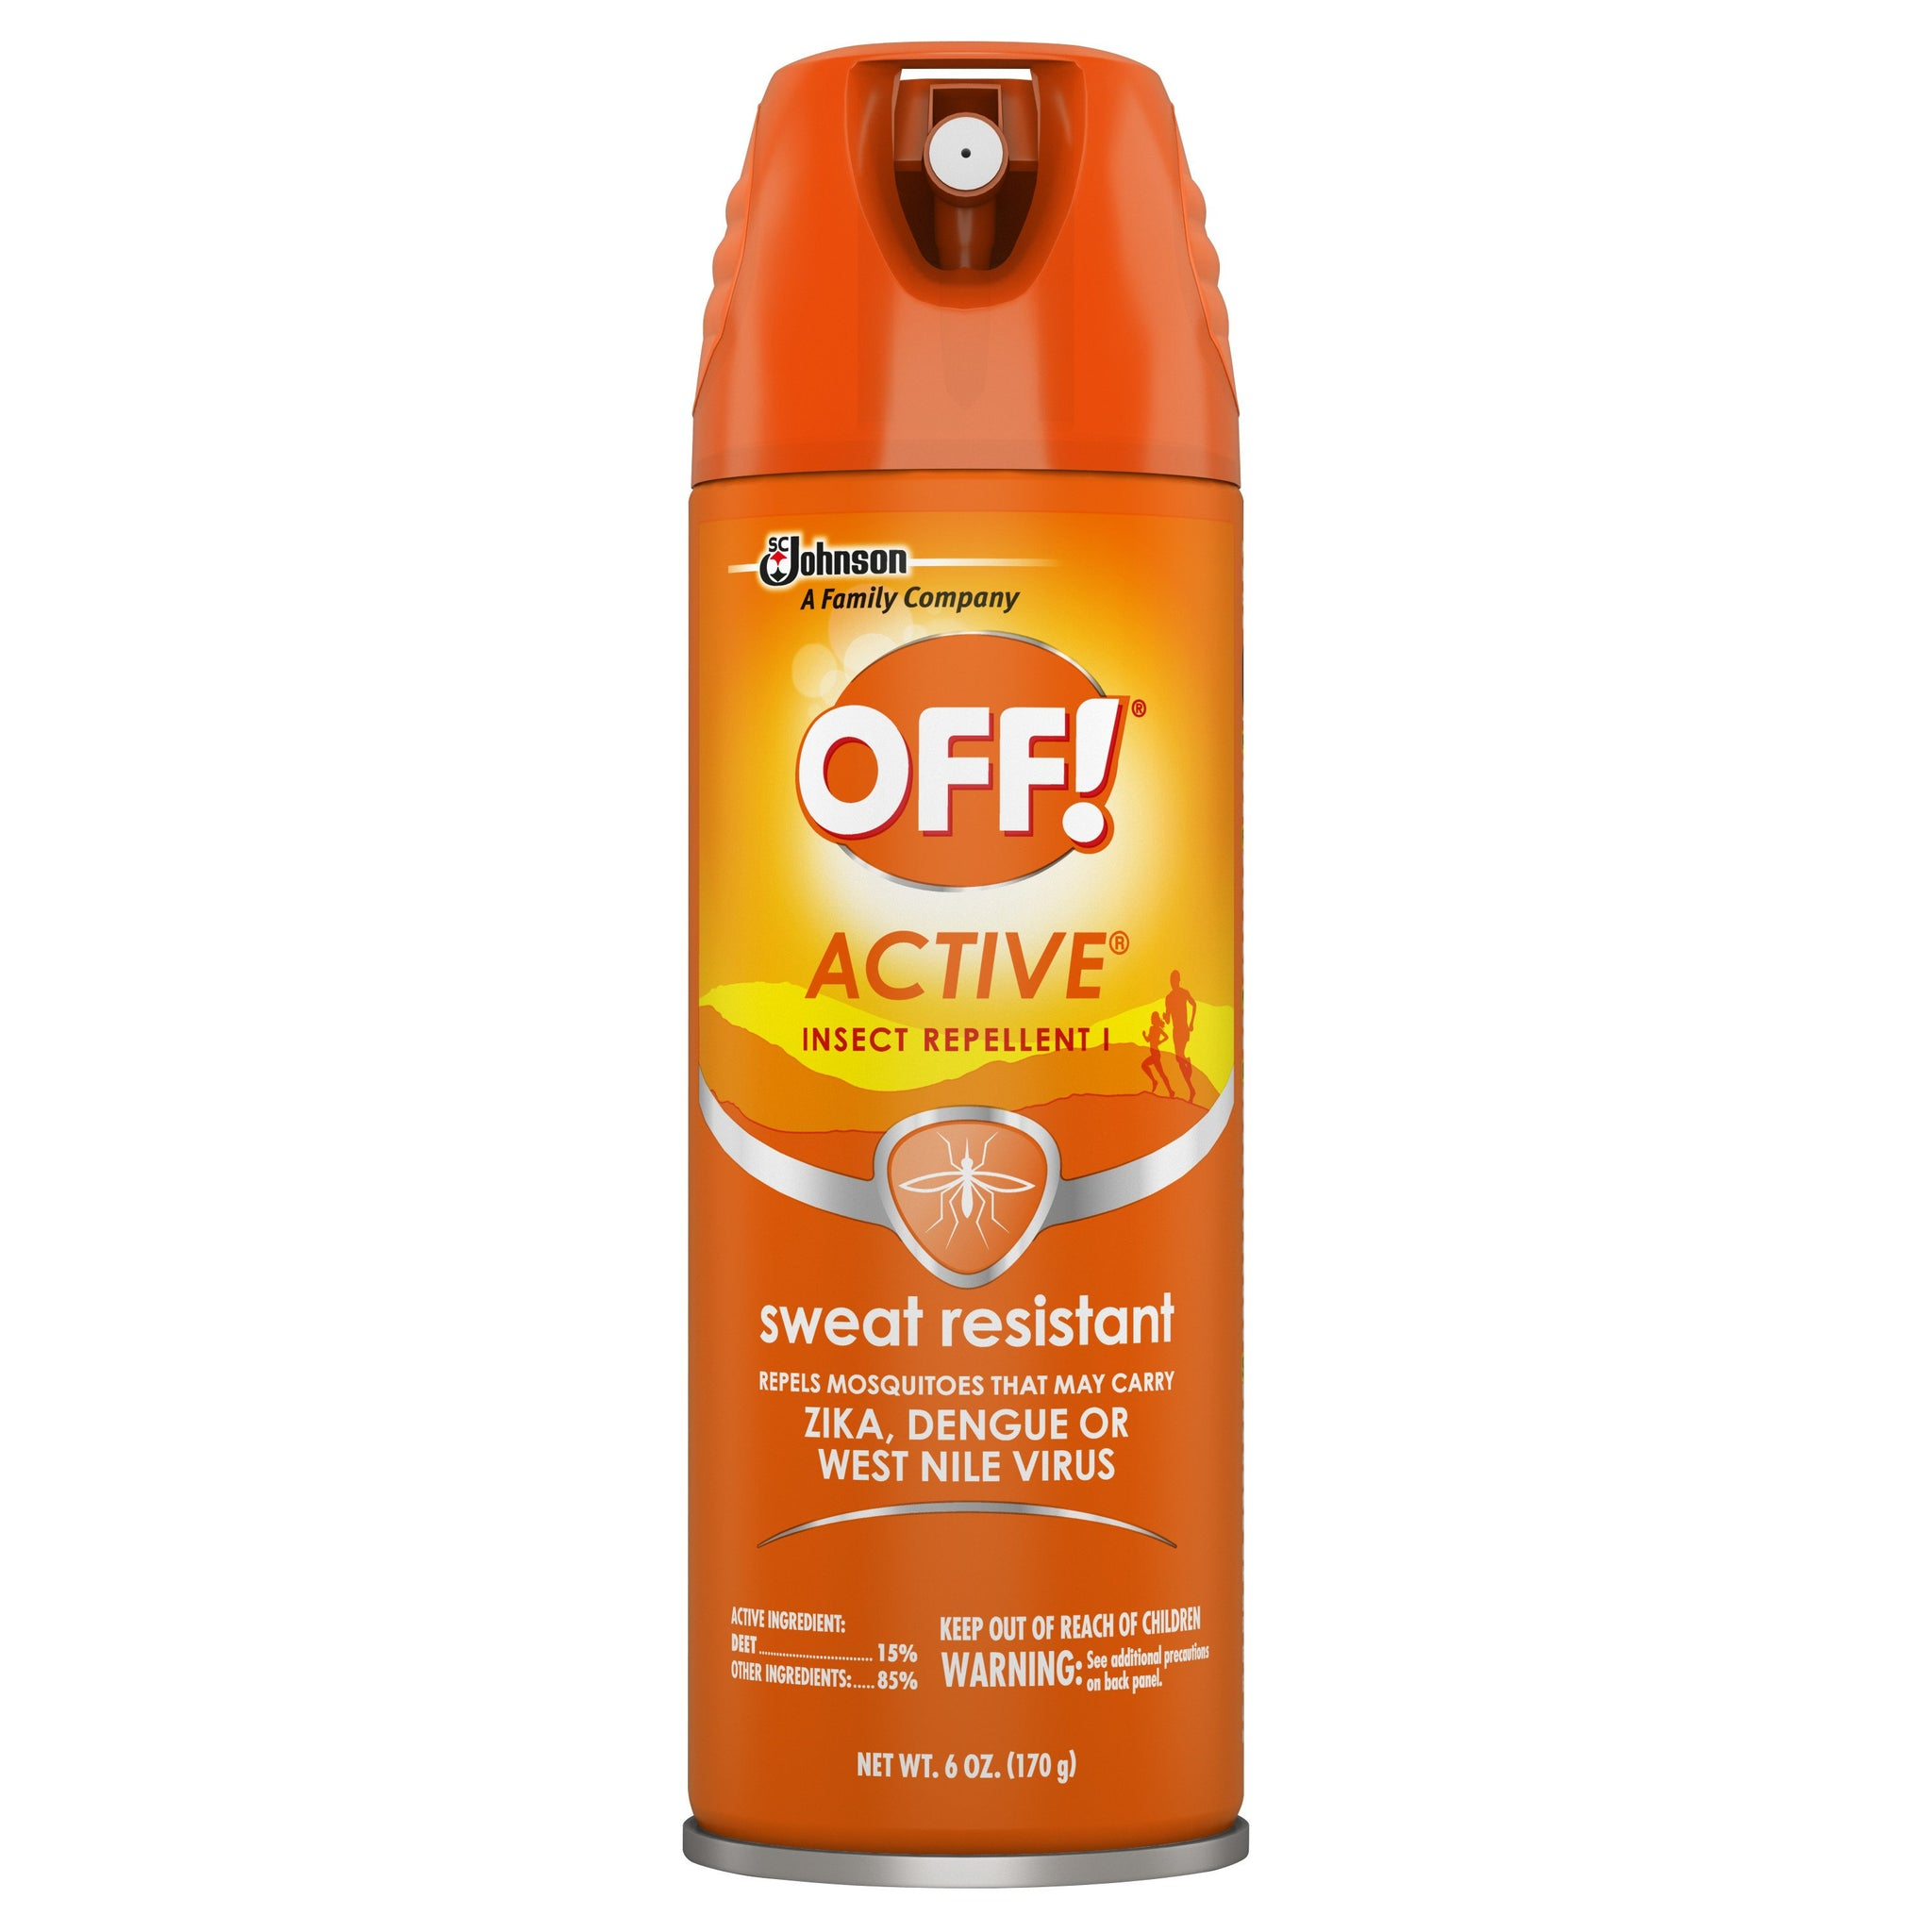 gre>Off Insect Repellent - sweat resistant -6oz